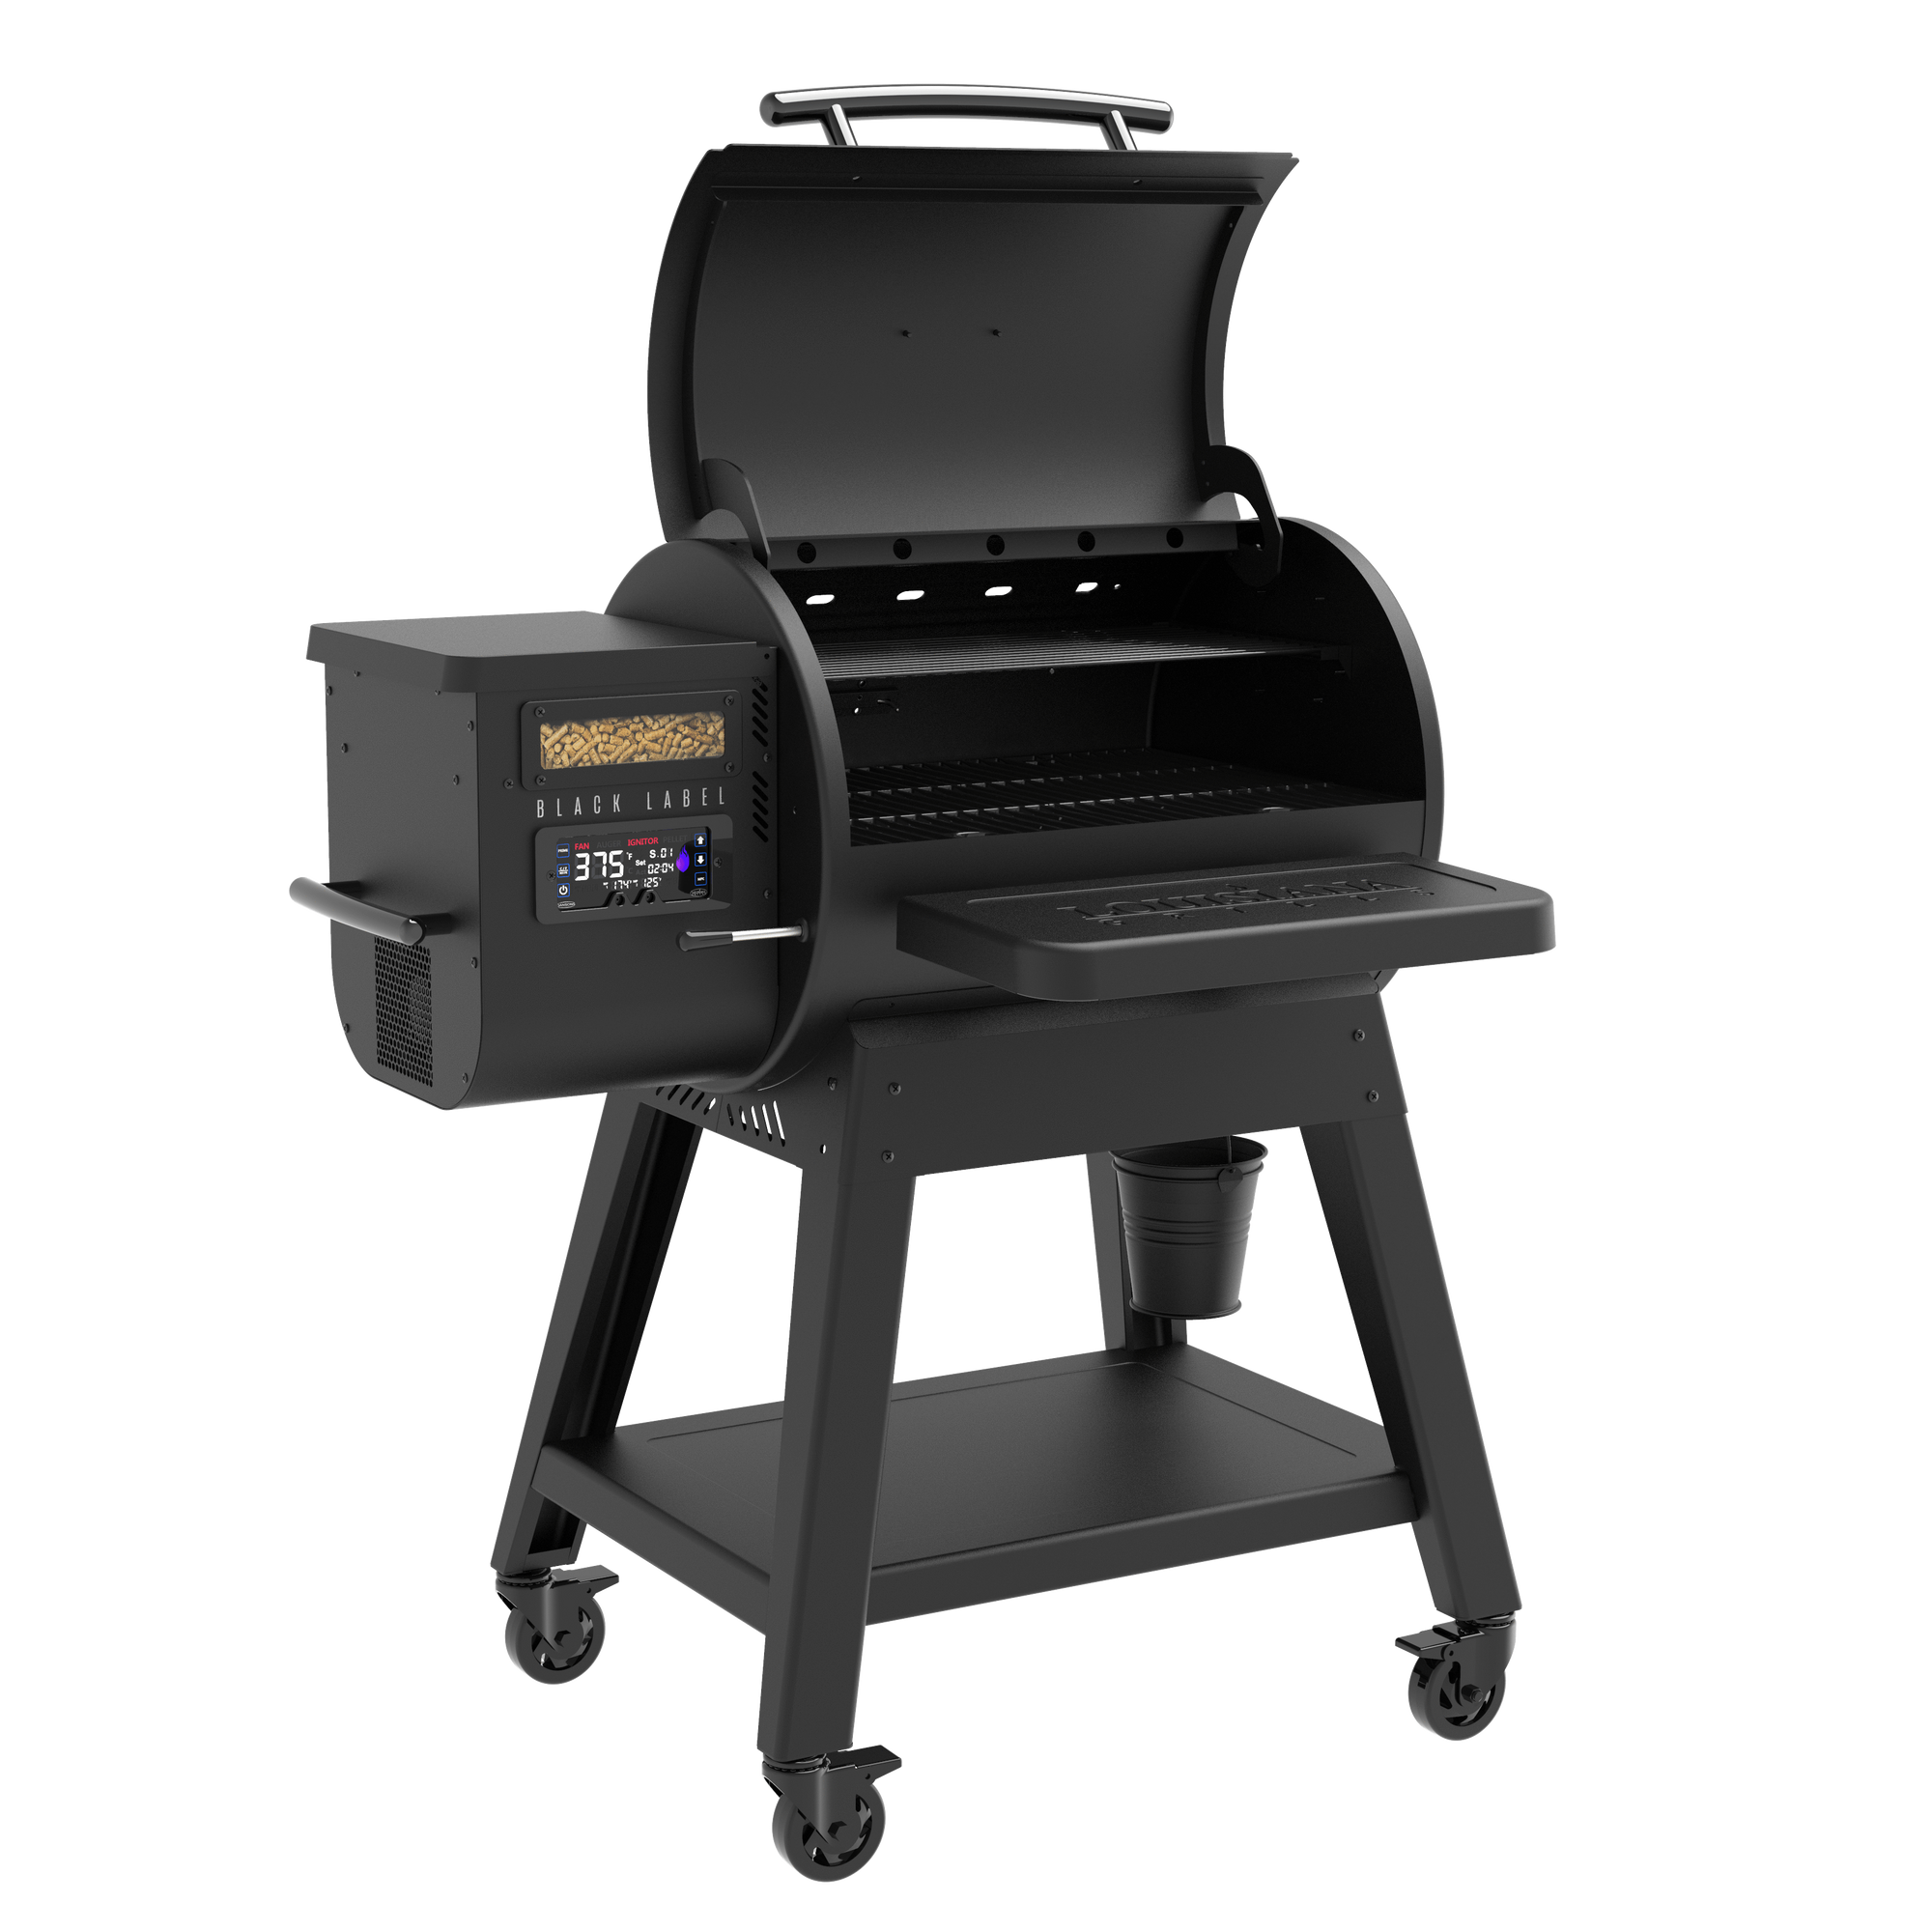 Louisana Grills Pellet Grill LG 800 Black Label Series Grill with WiFi Control